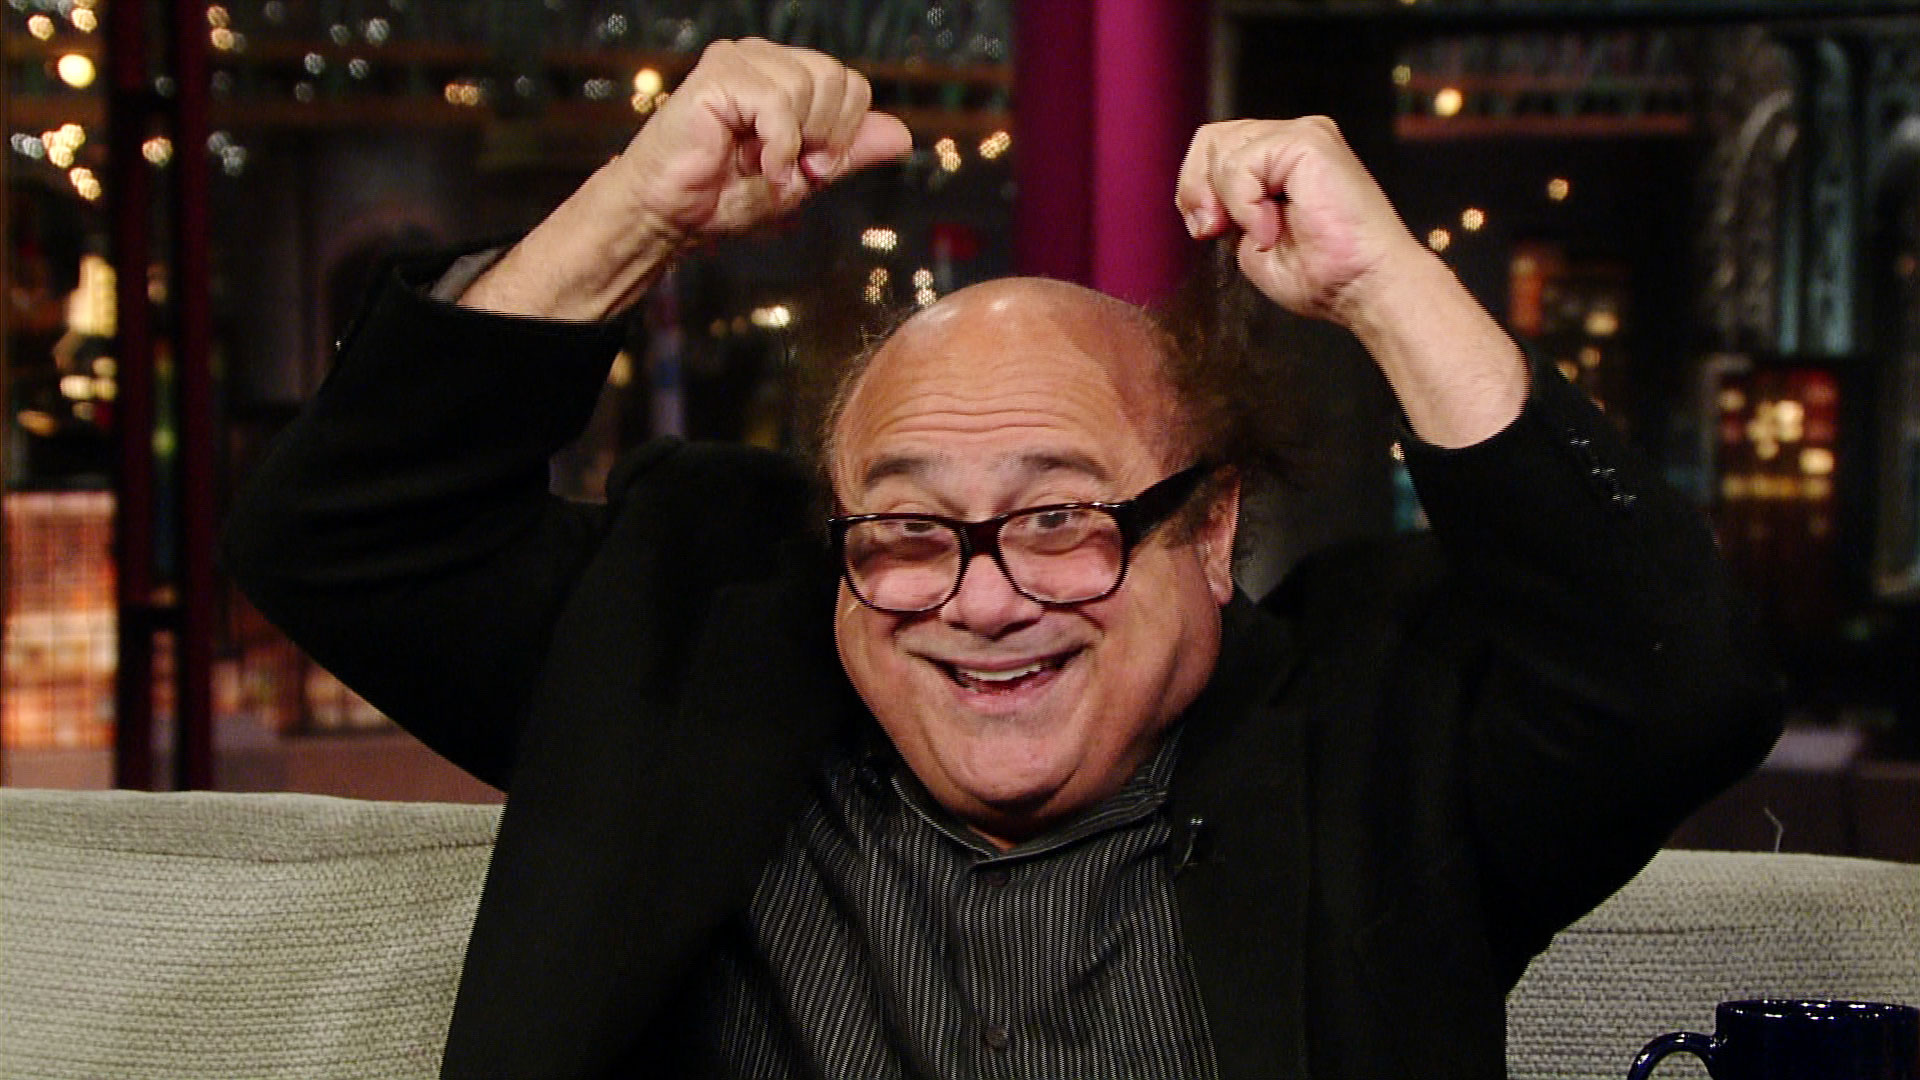 Danny Devito Full hd wallpapers